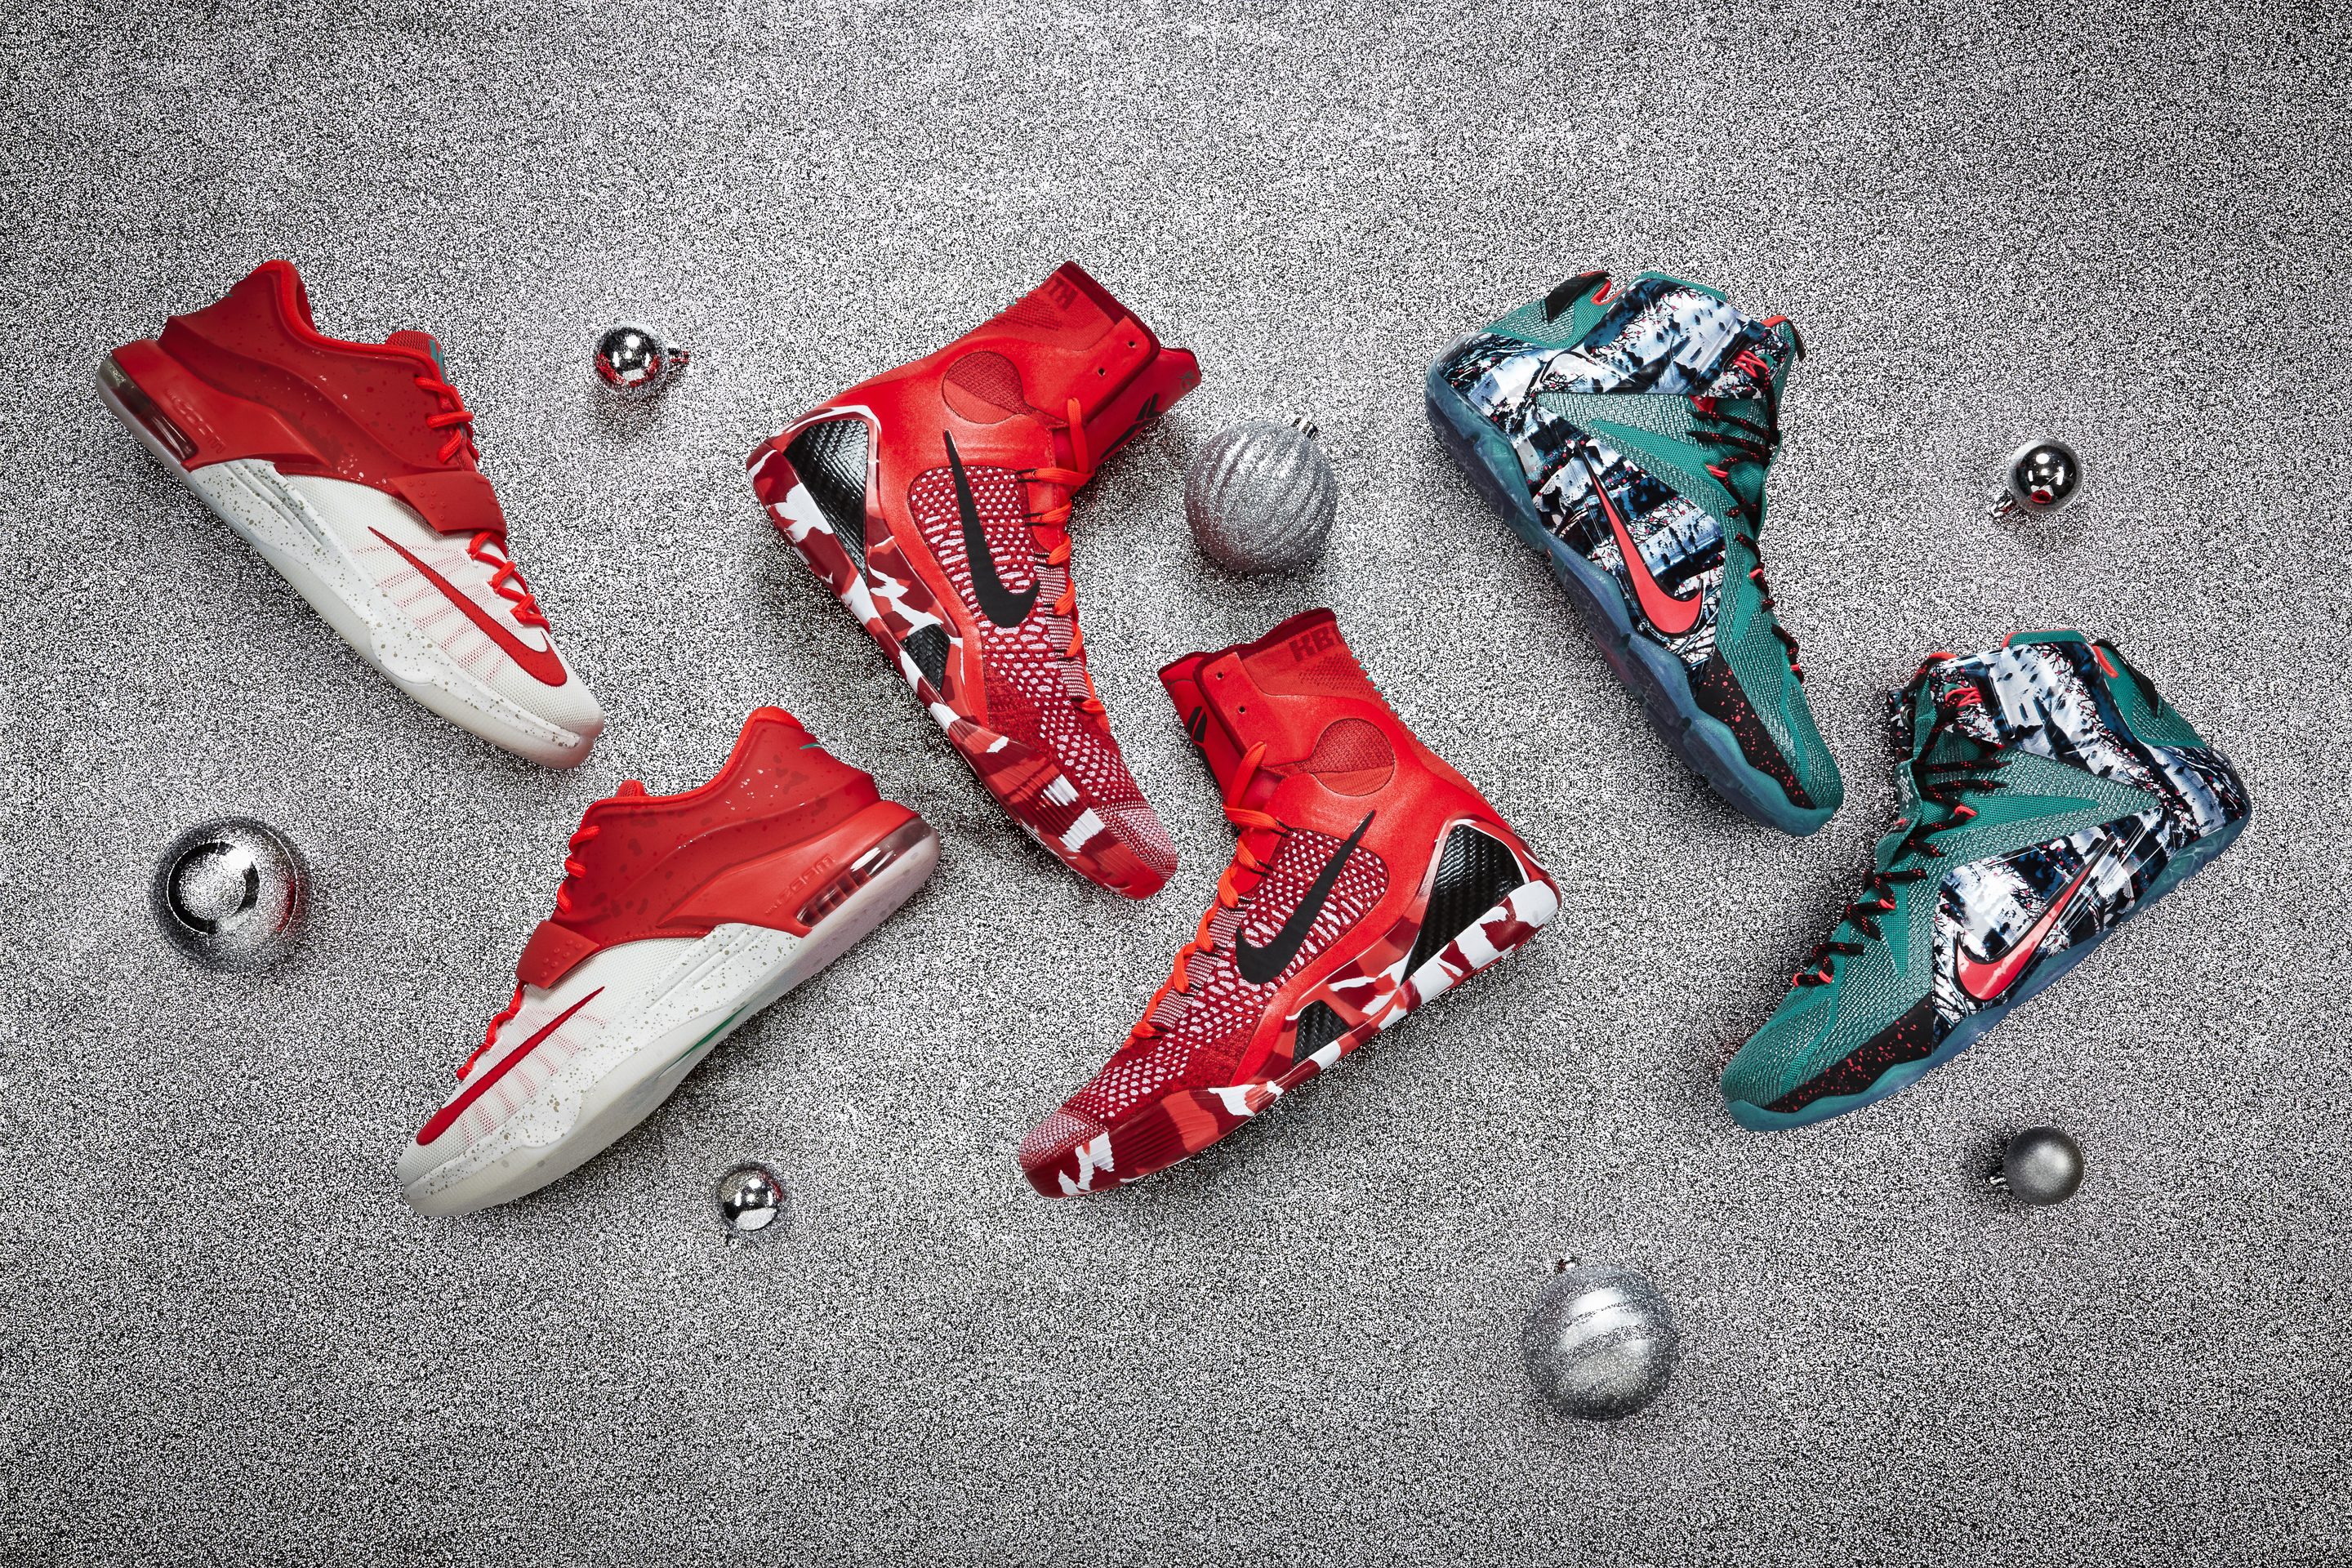 PHOTOS: Nike Christmas kicks for LeBron, Kobe, KD - CBSSports.com